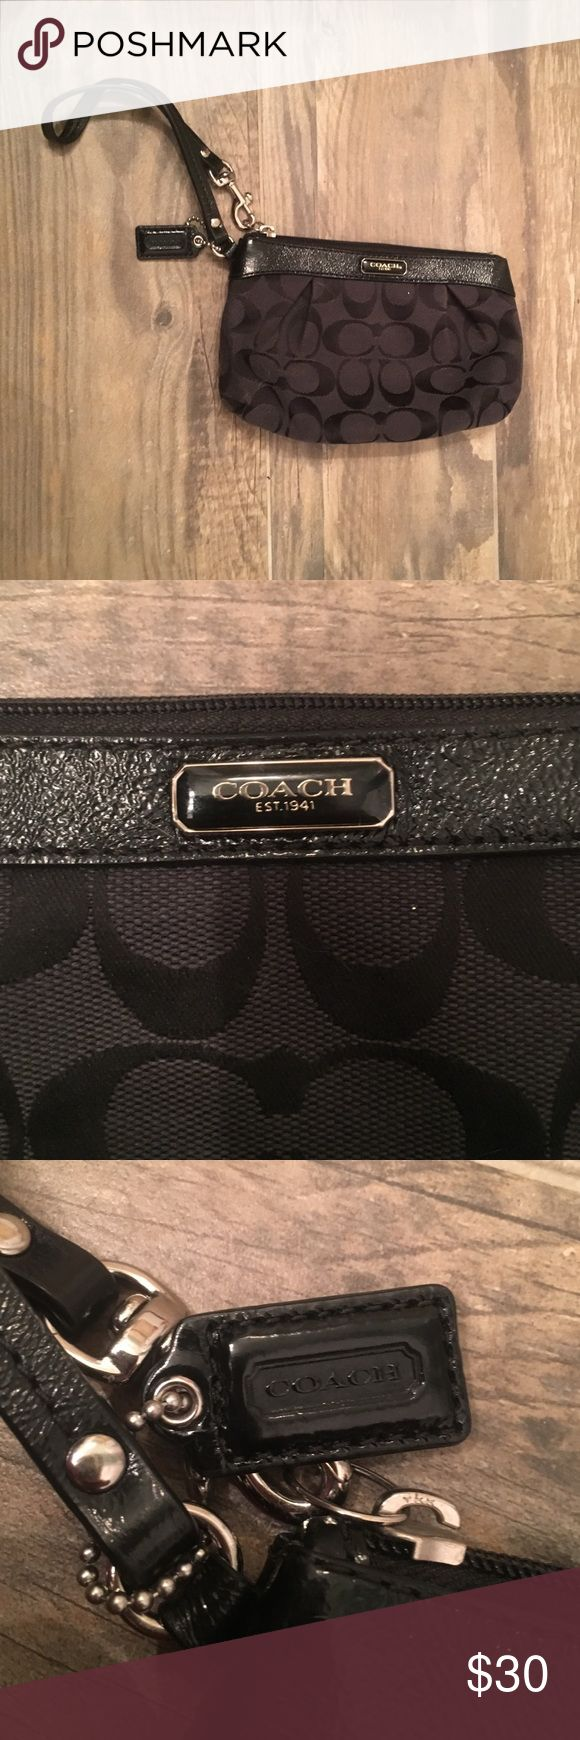 Coach clutch Small black coach wristlet! Perfect for prom! Coach Bags Clutches & Wristlets